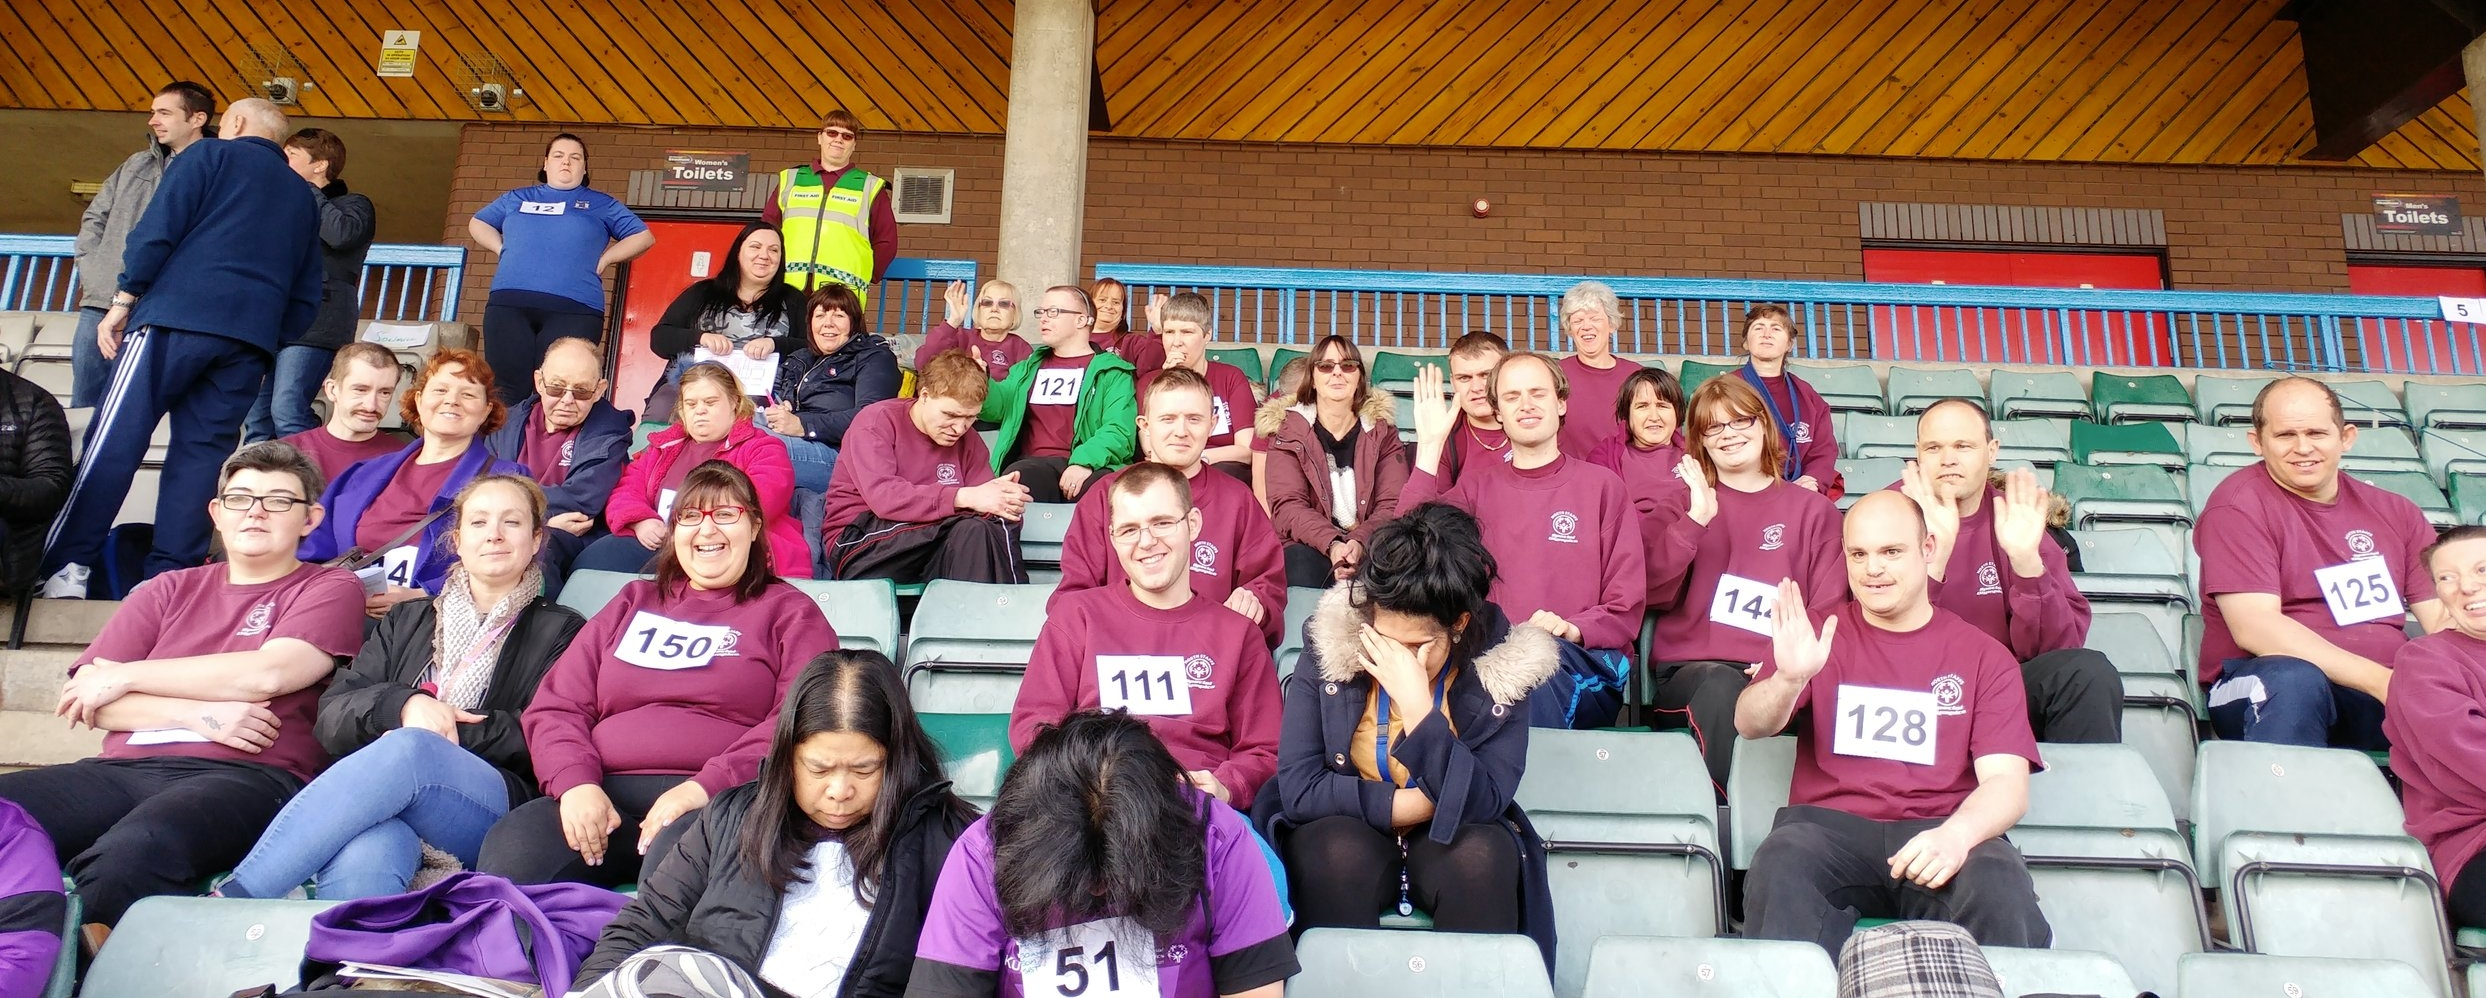 North Staffs Special Olympics team - winners all